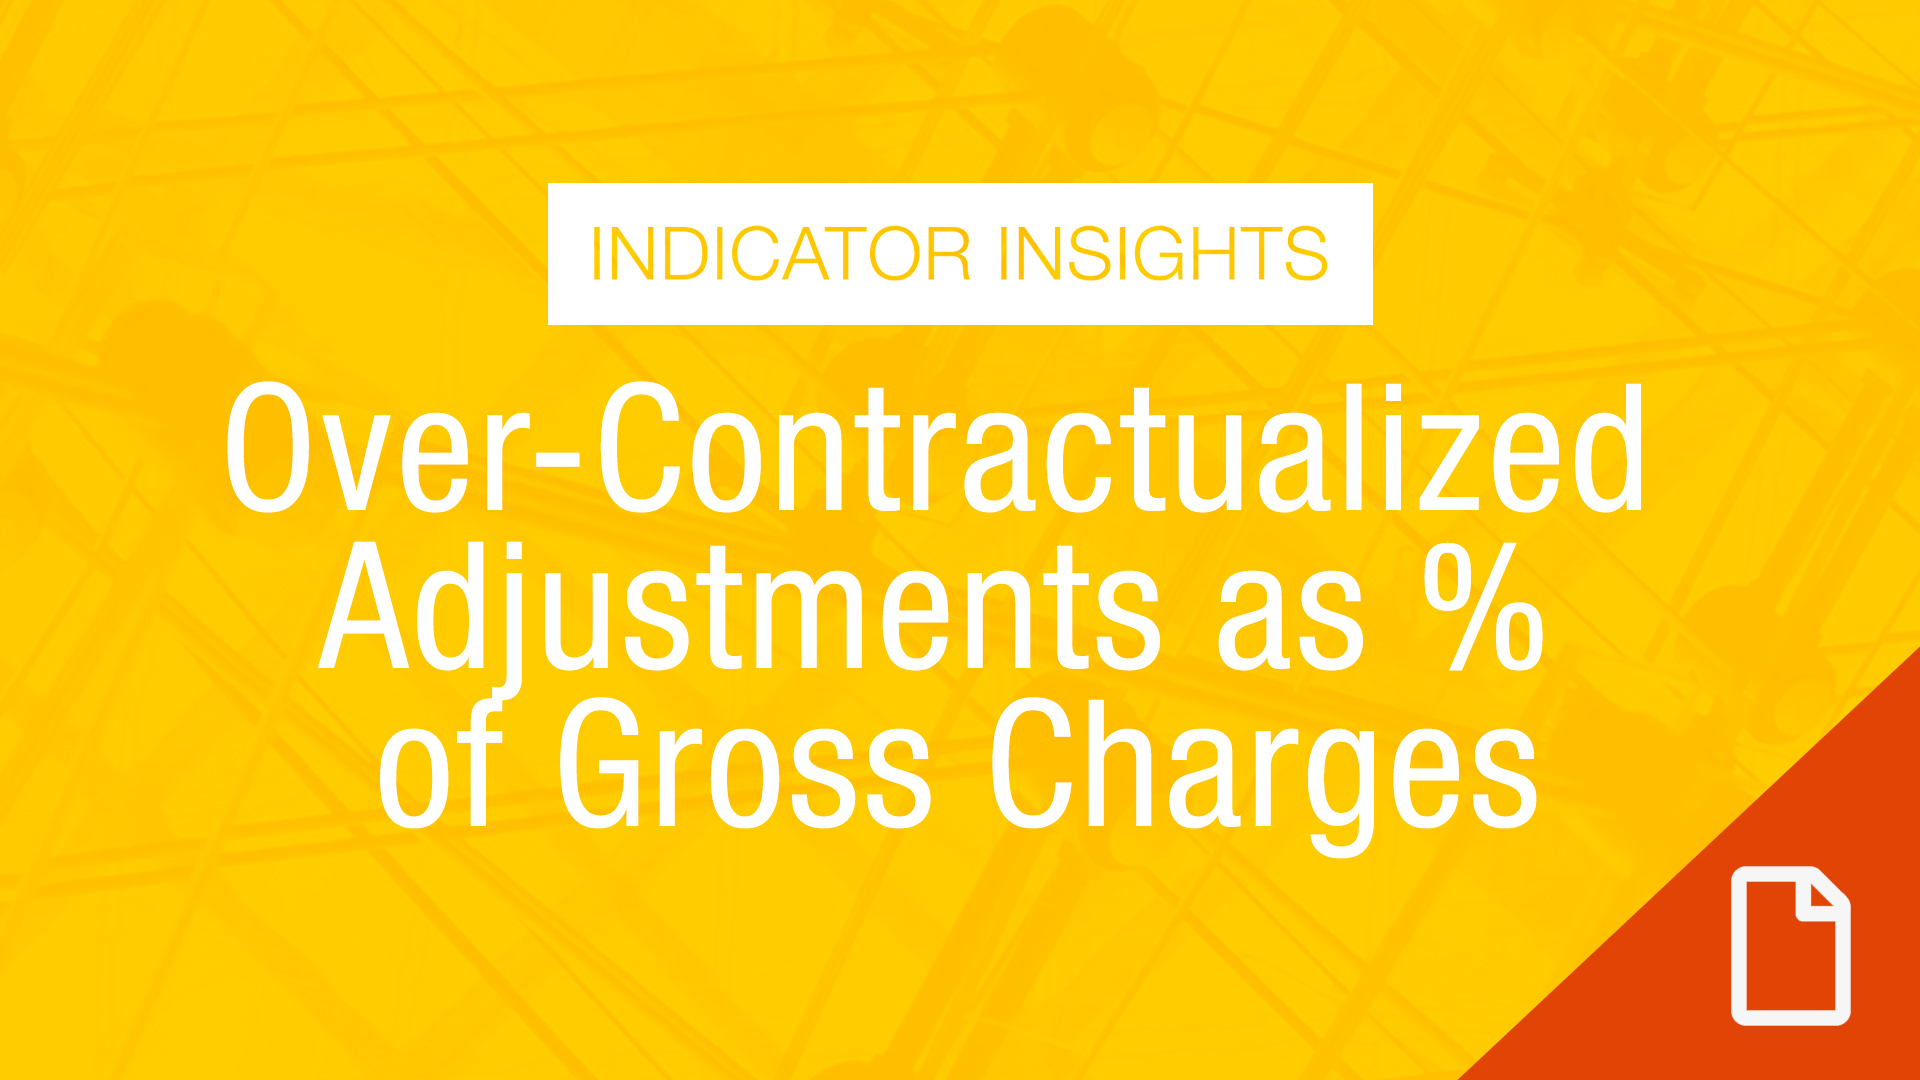 Thumbnail Indicator Insights Overcontractualization